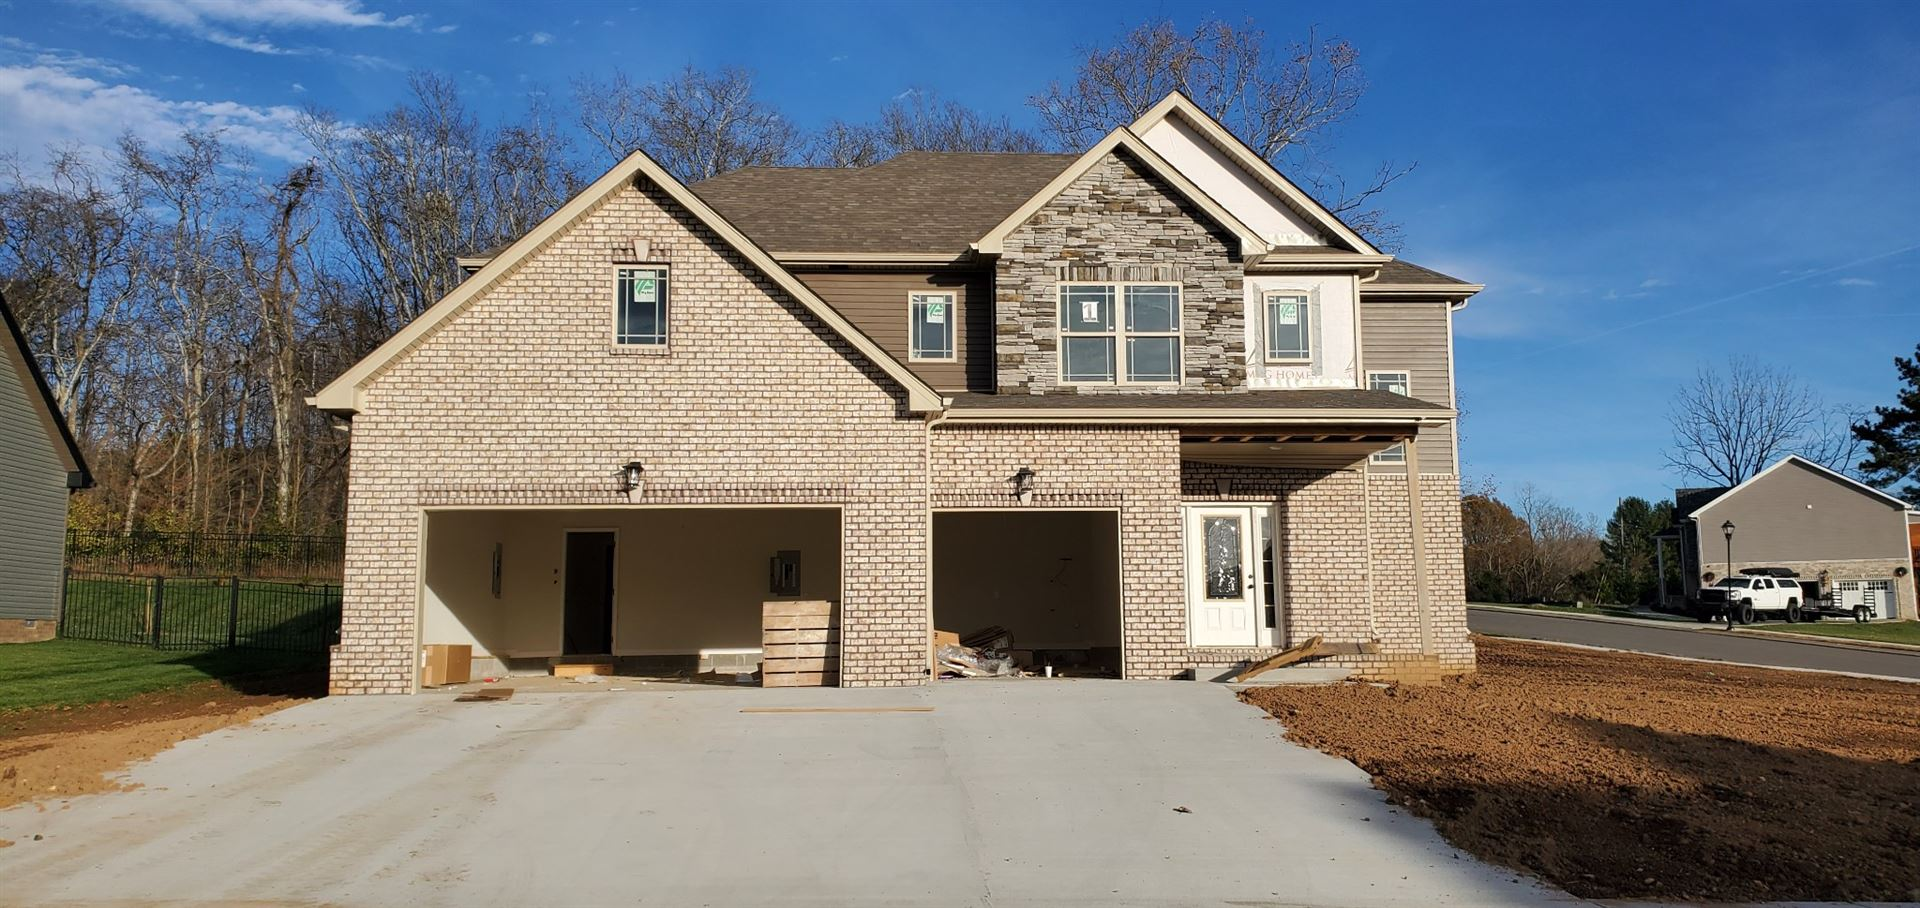 Photo of 1 River Chase, Clarksville, TN 37043 (MLS # 2292261)